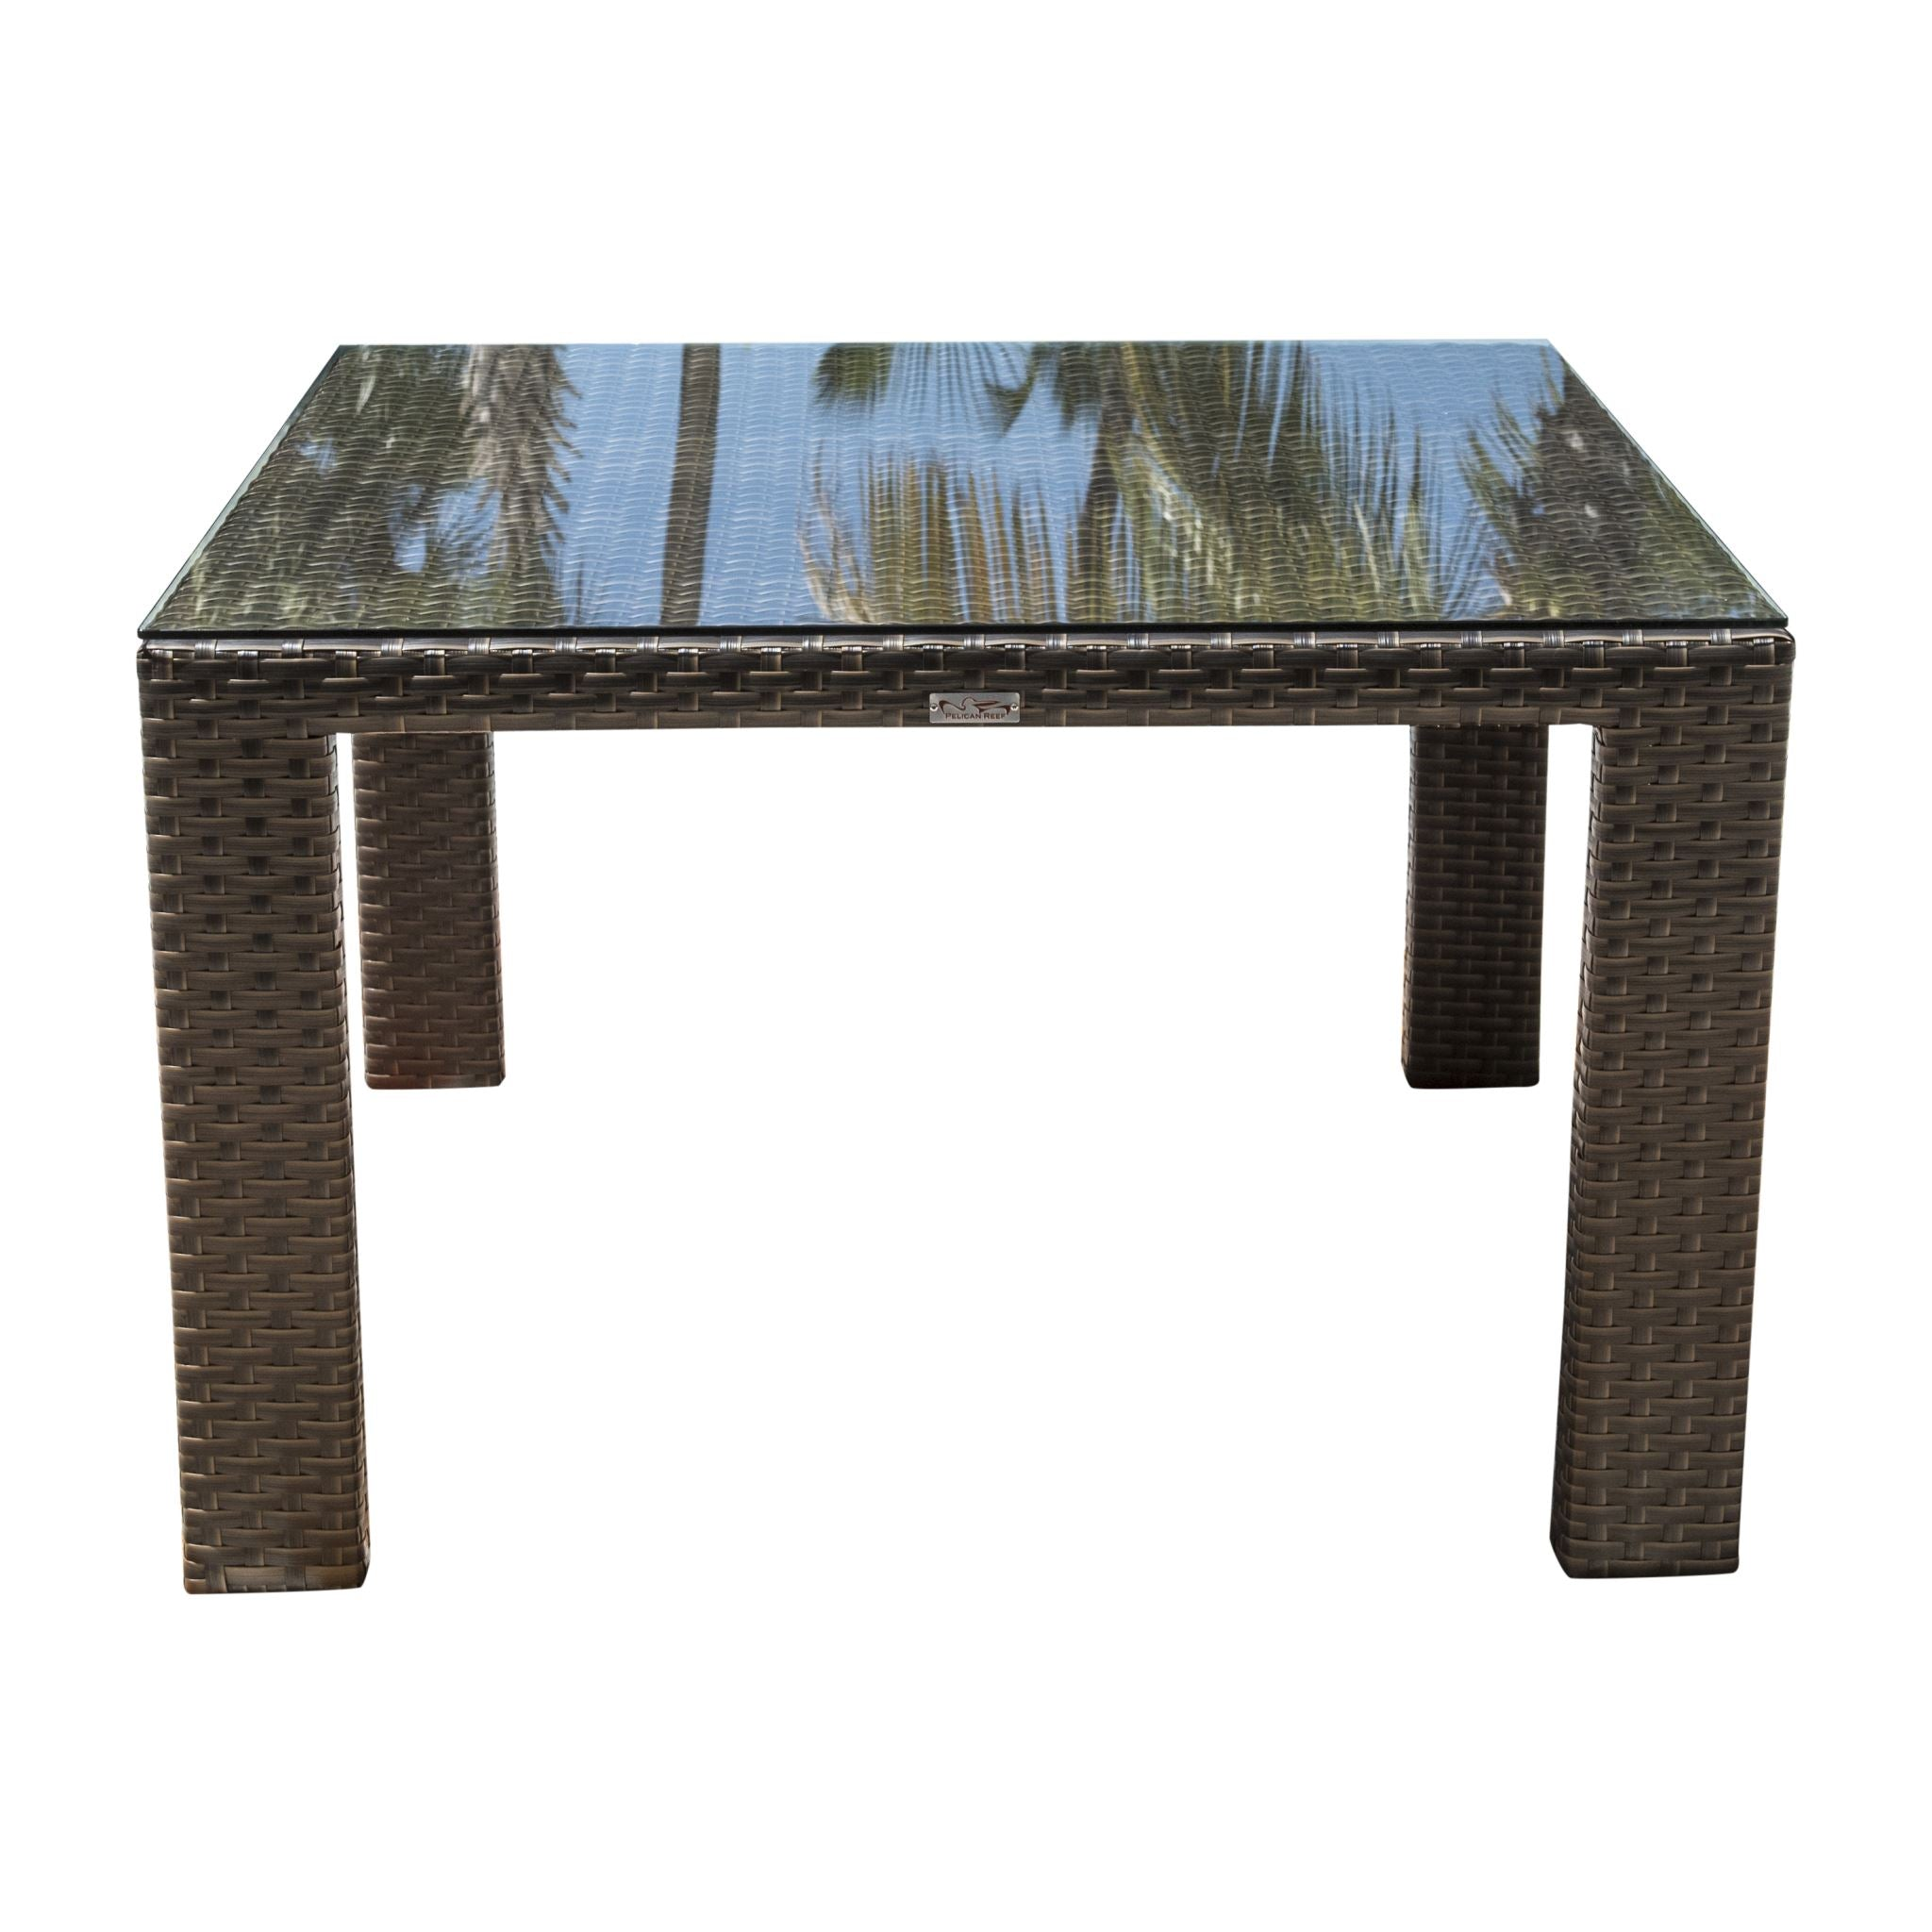 Hospitality Rattan Fiji Dining Table w/glass Square Woven Square  901-3347-ATQ-ST-GLASS